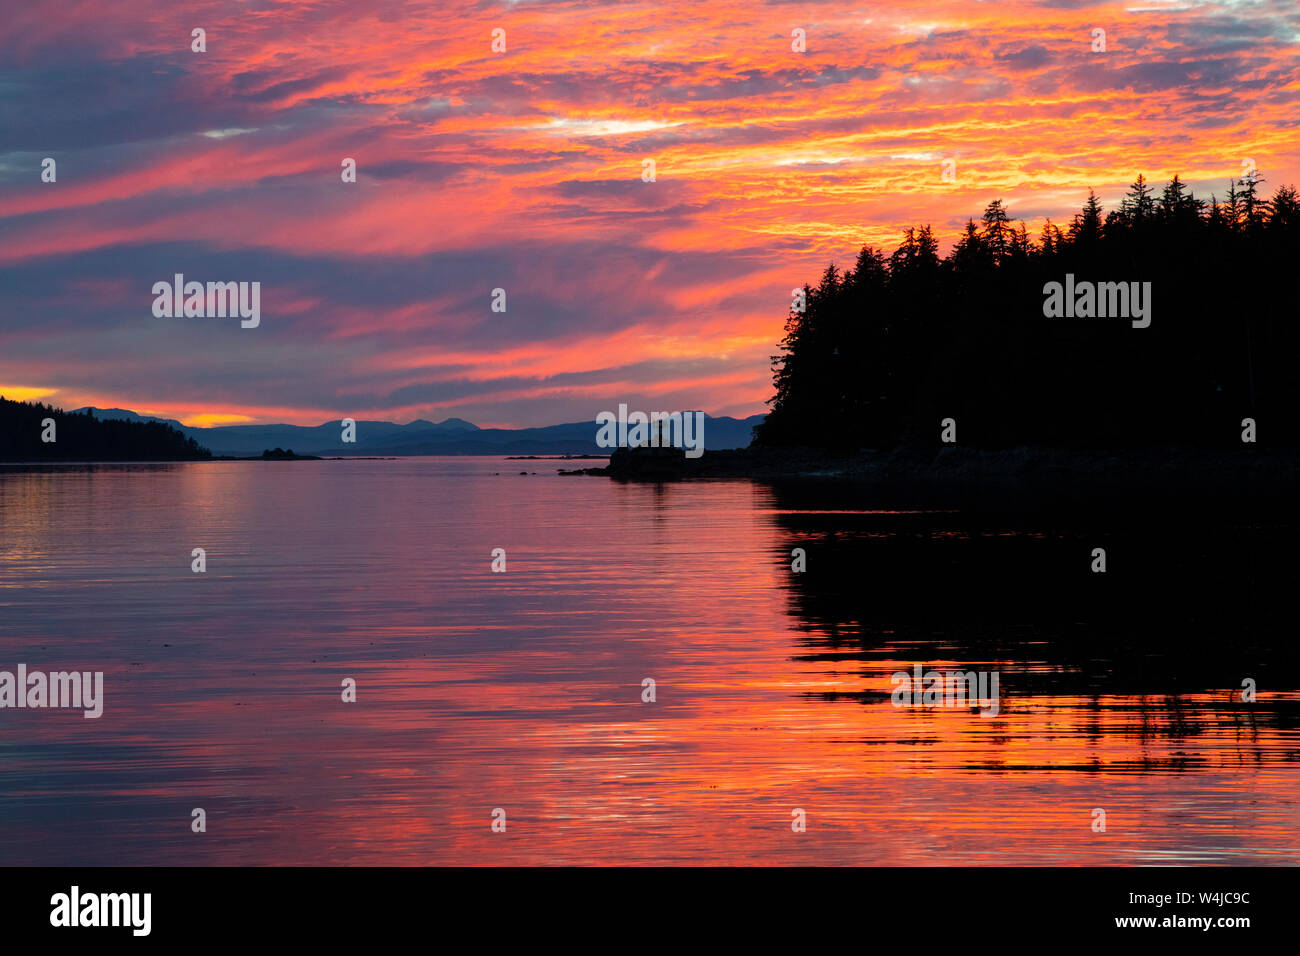 Sunset over Frederick Sound from Cape Fanshaw, Tongass National Forest, Alaska. Stock Photo